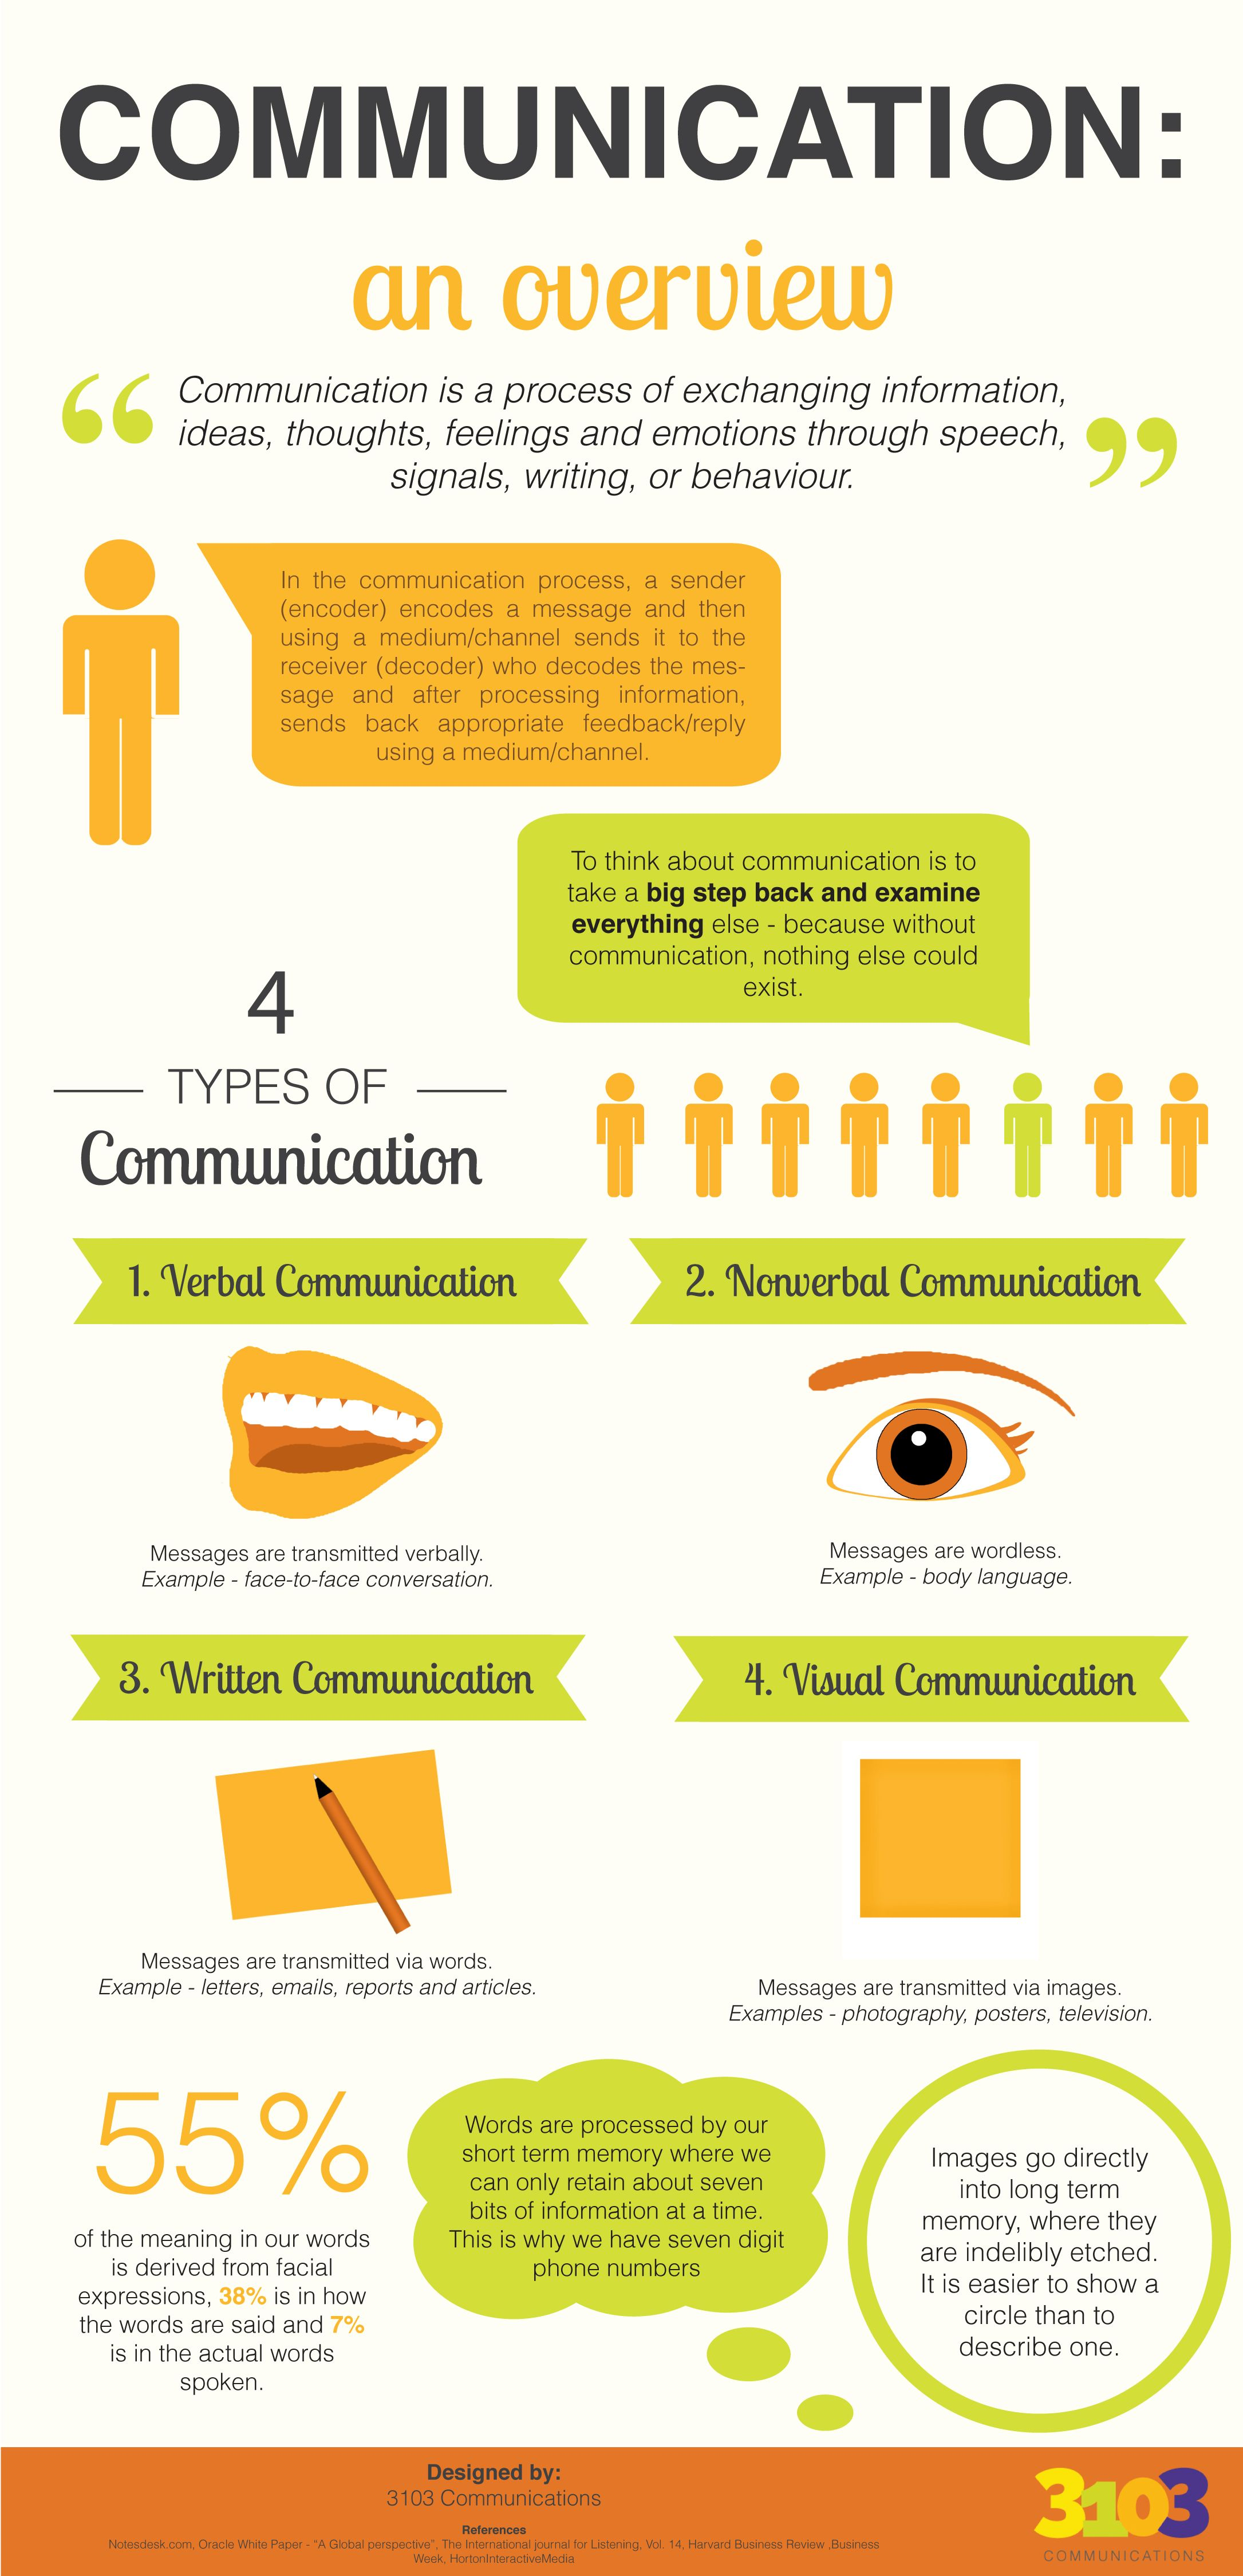 communication an overview designed by communications communication an overview designed by 3103 communications infographic communication overview